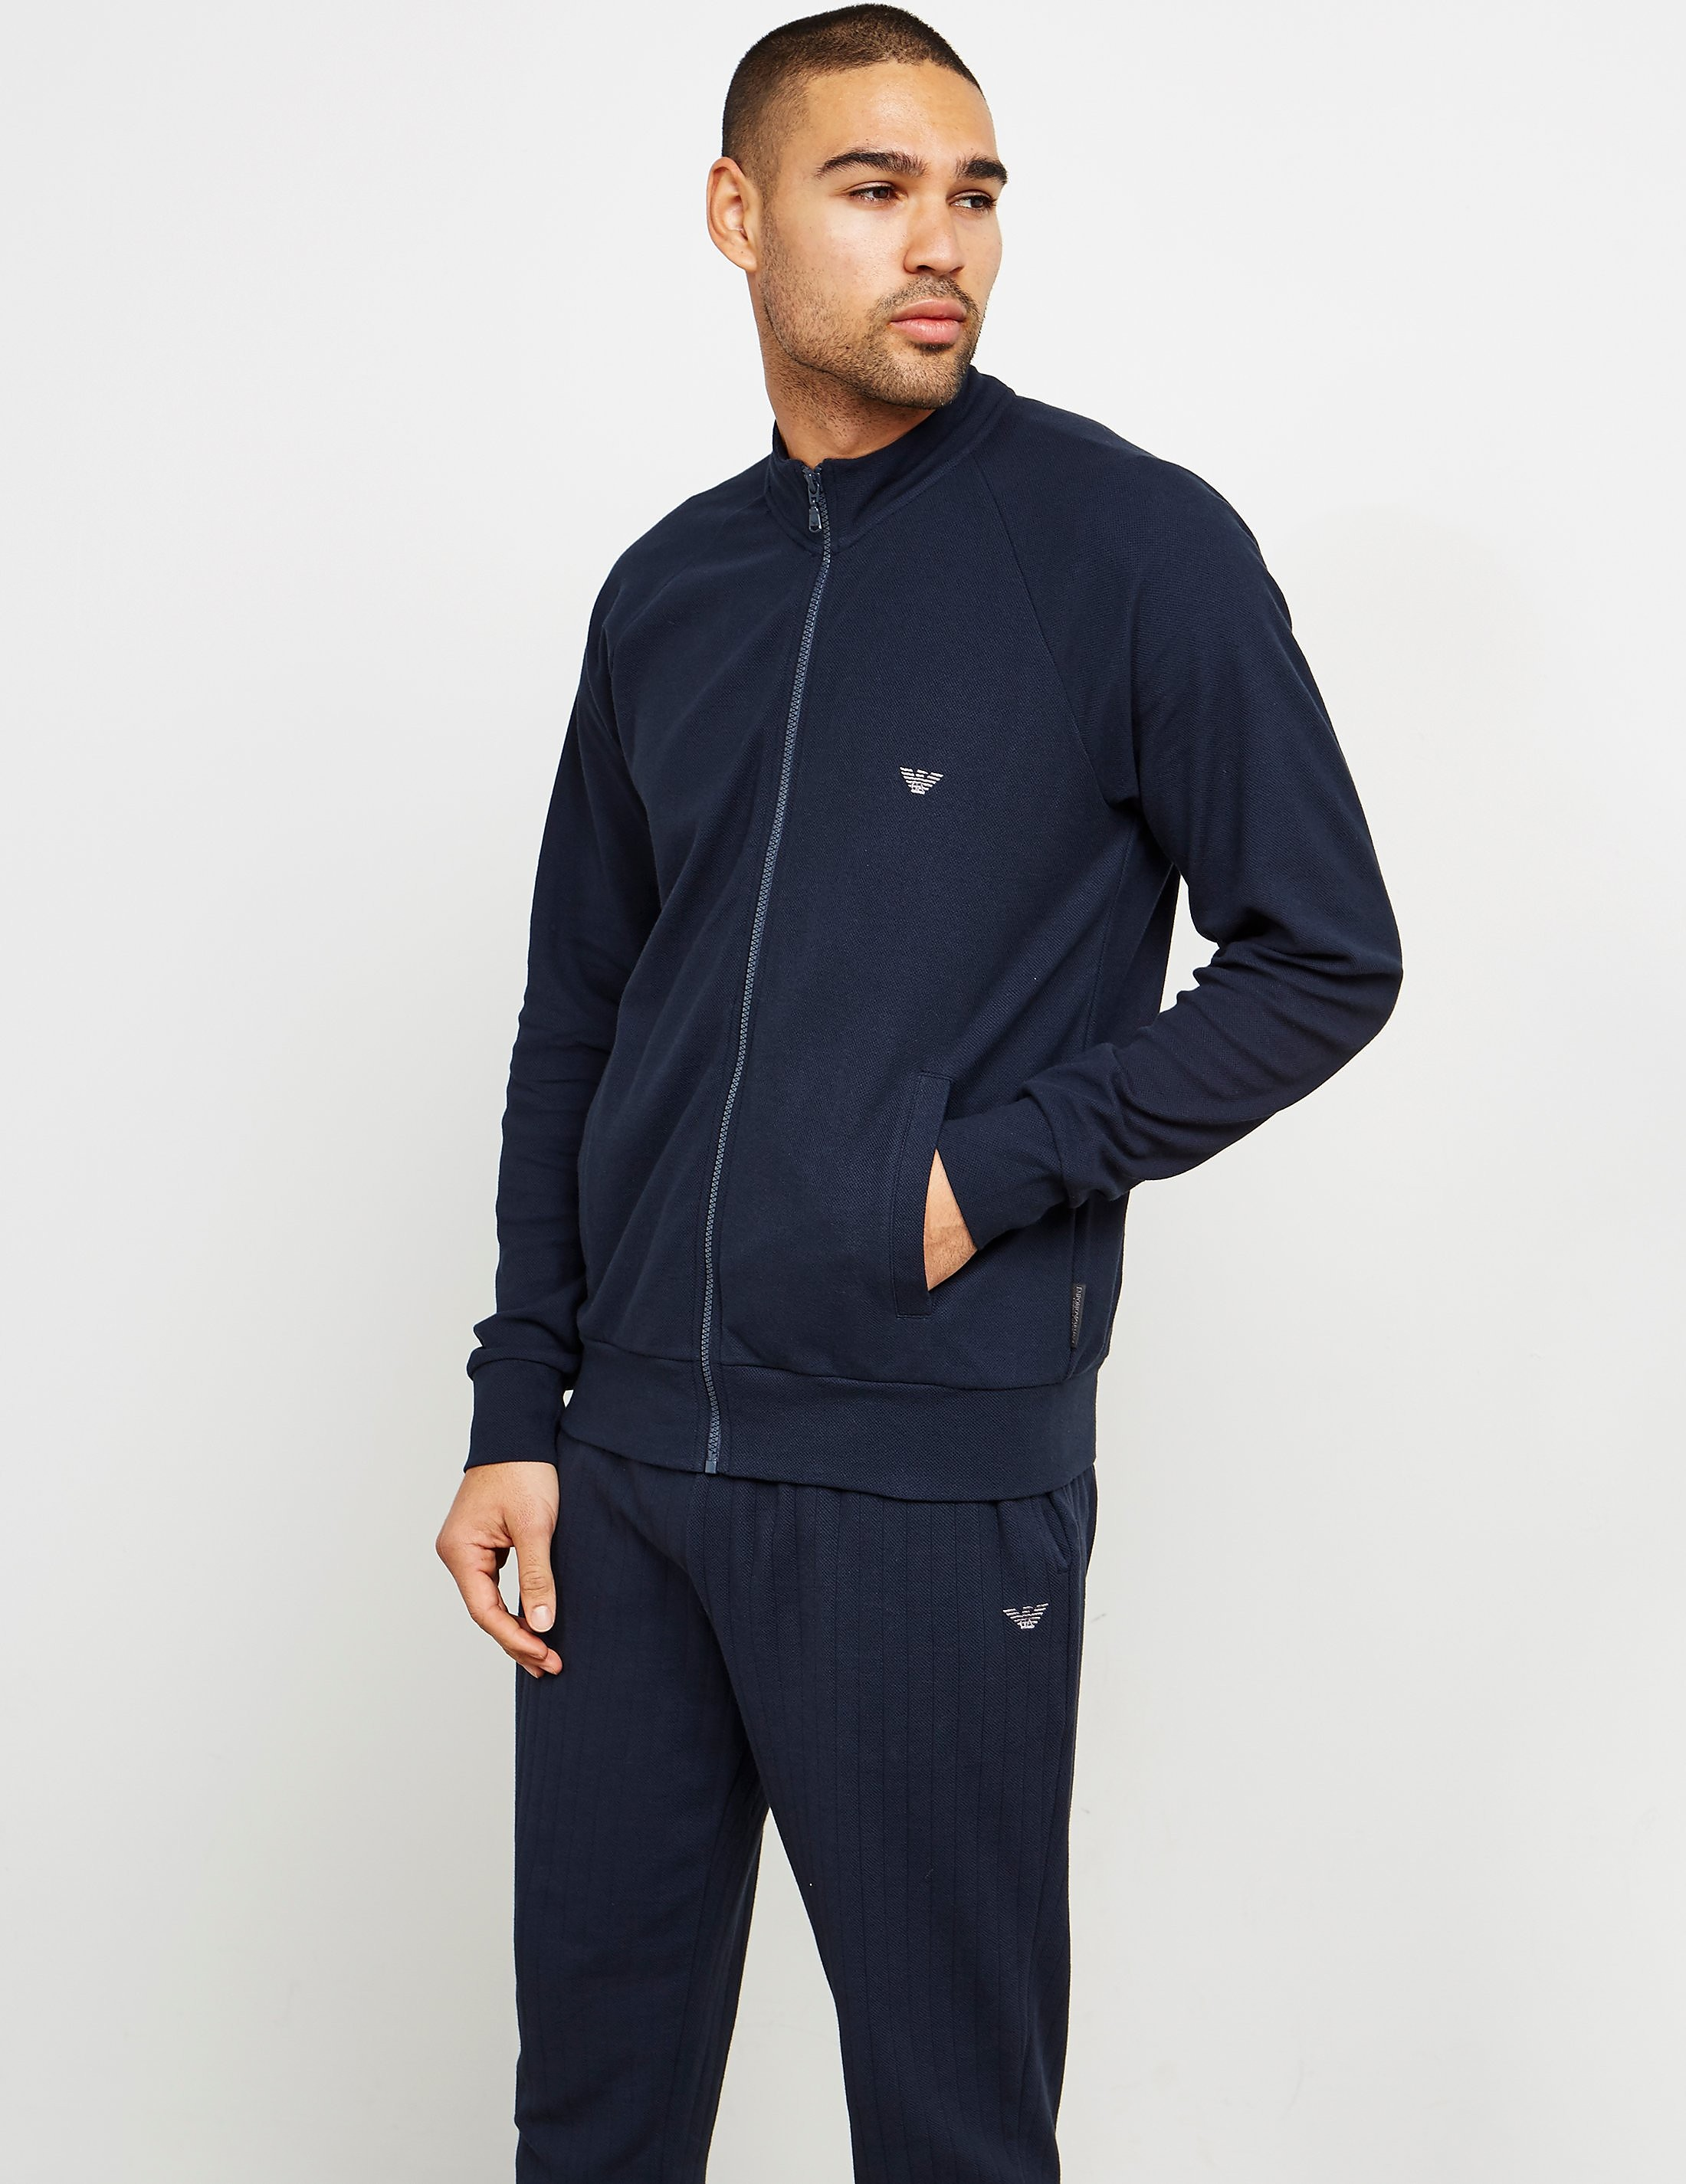 Emporio Armani Interlock Track Top